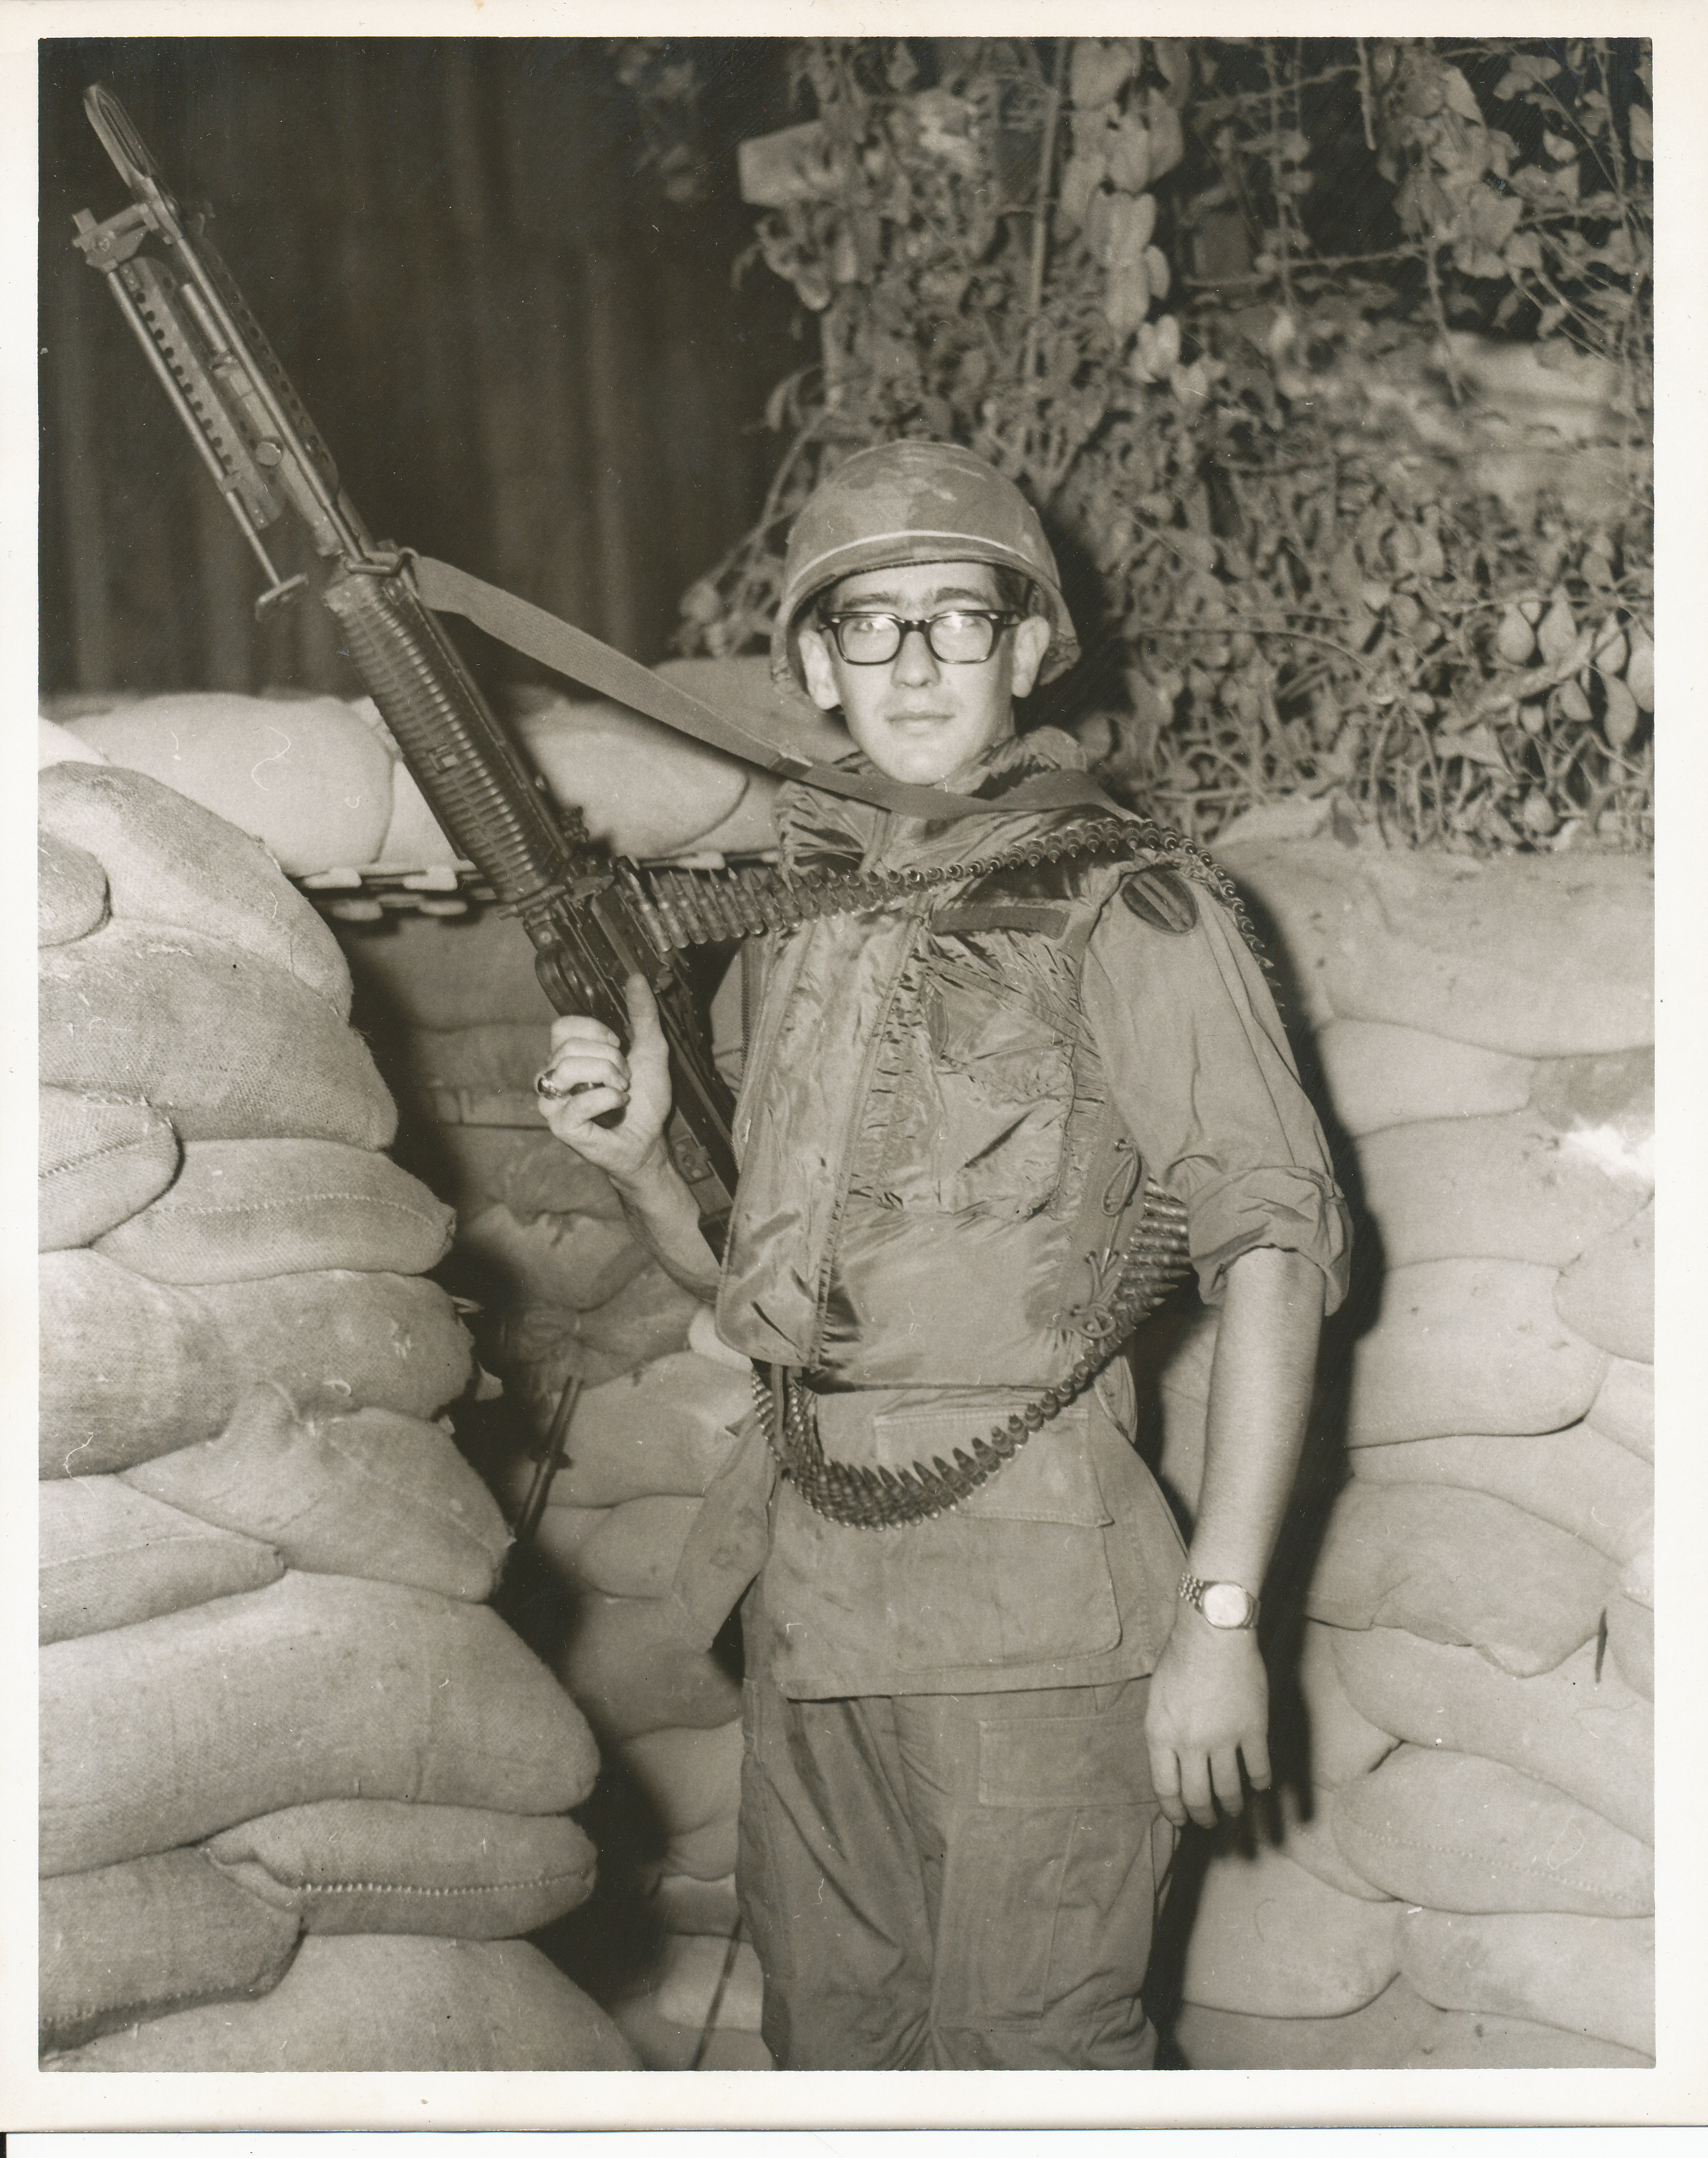 Black and white photo of soldier in uniform holding a gun